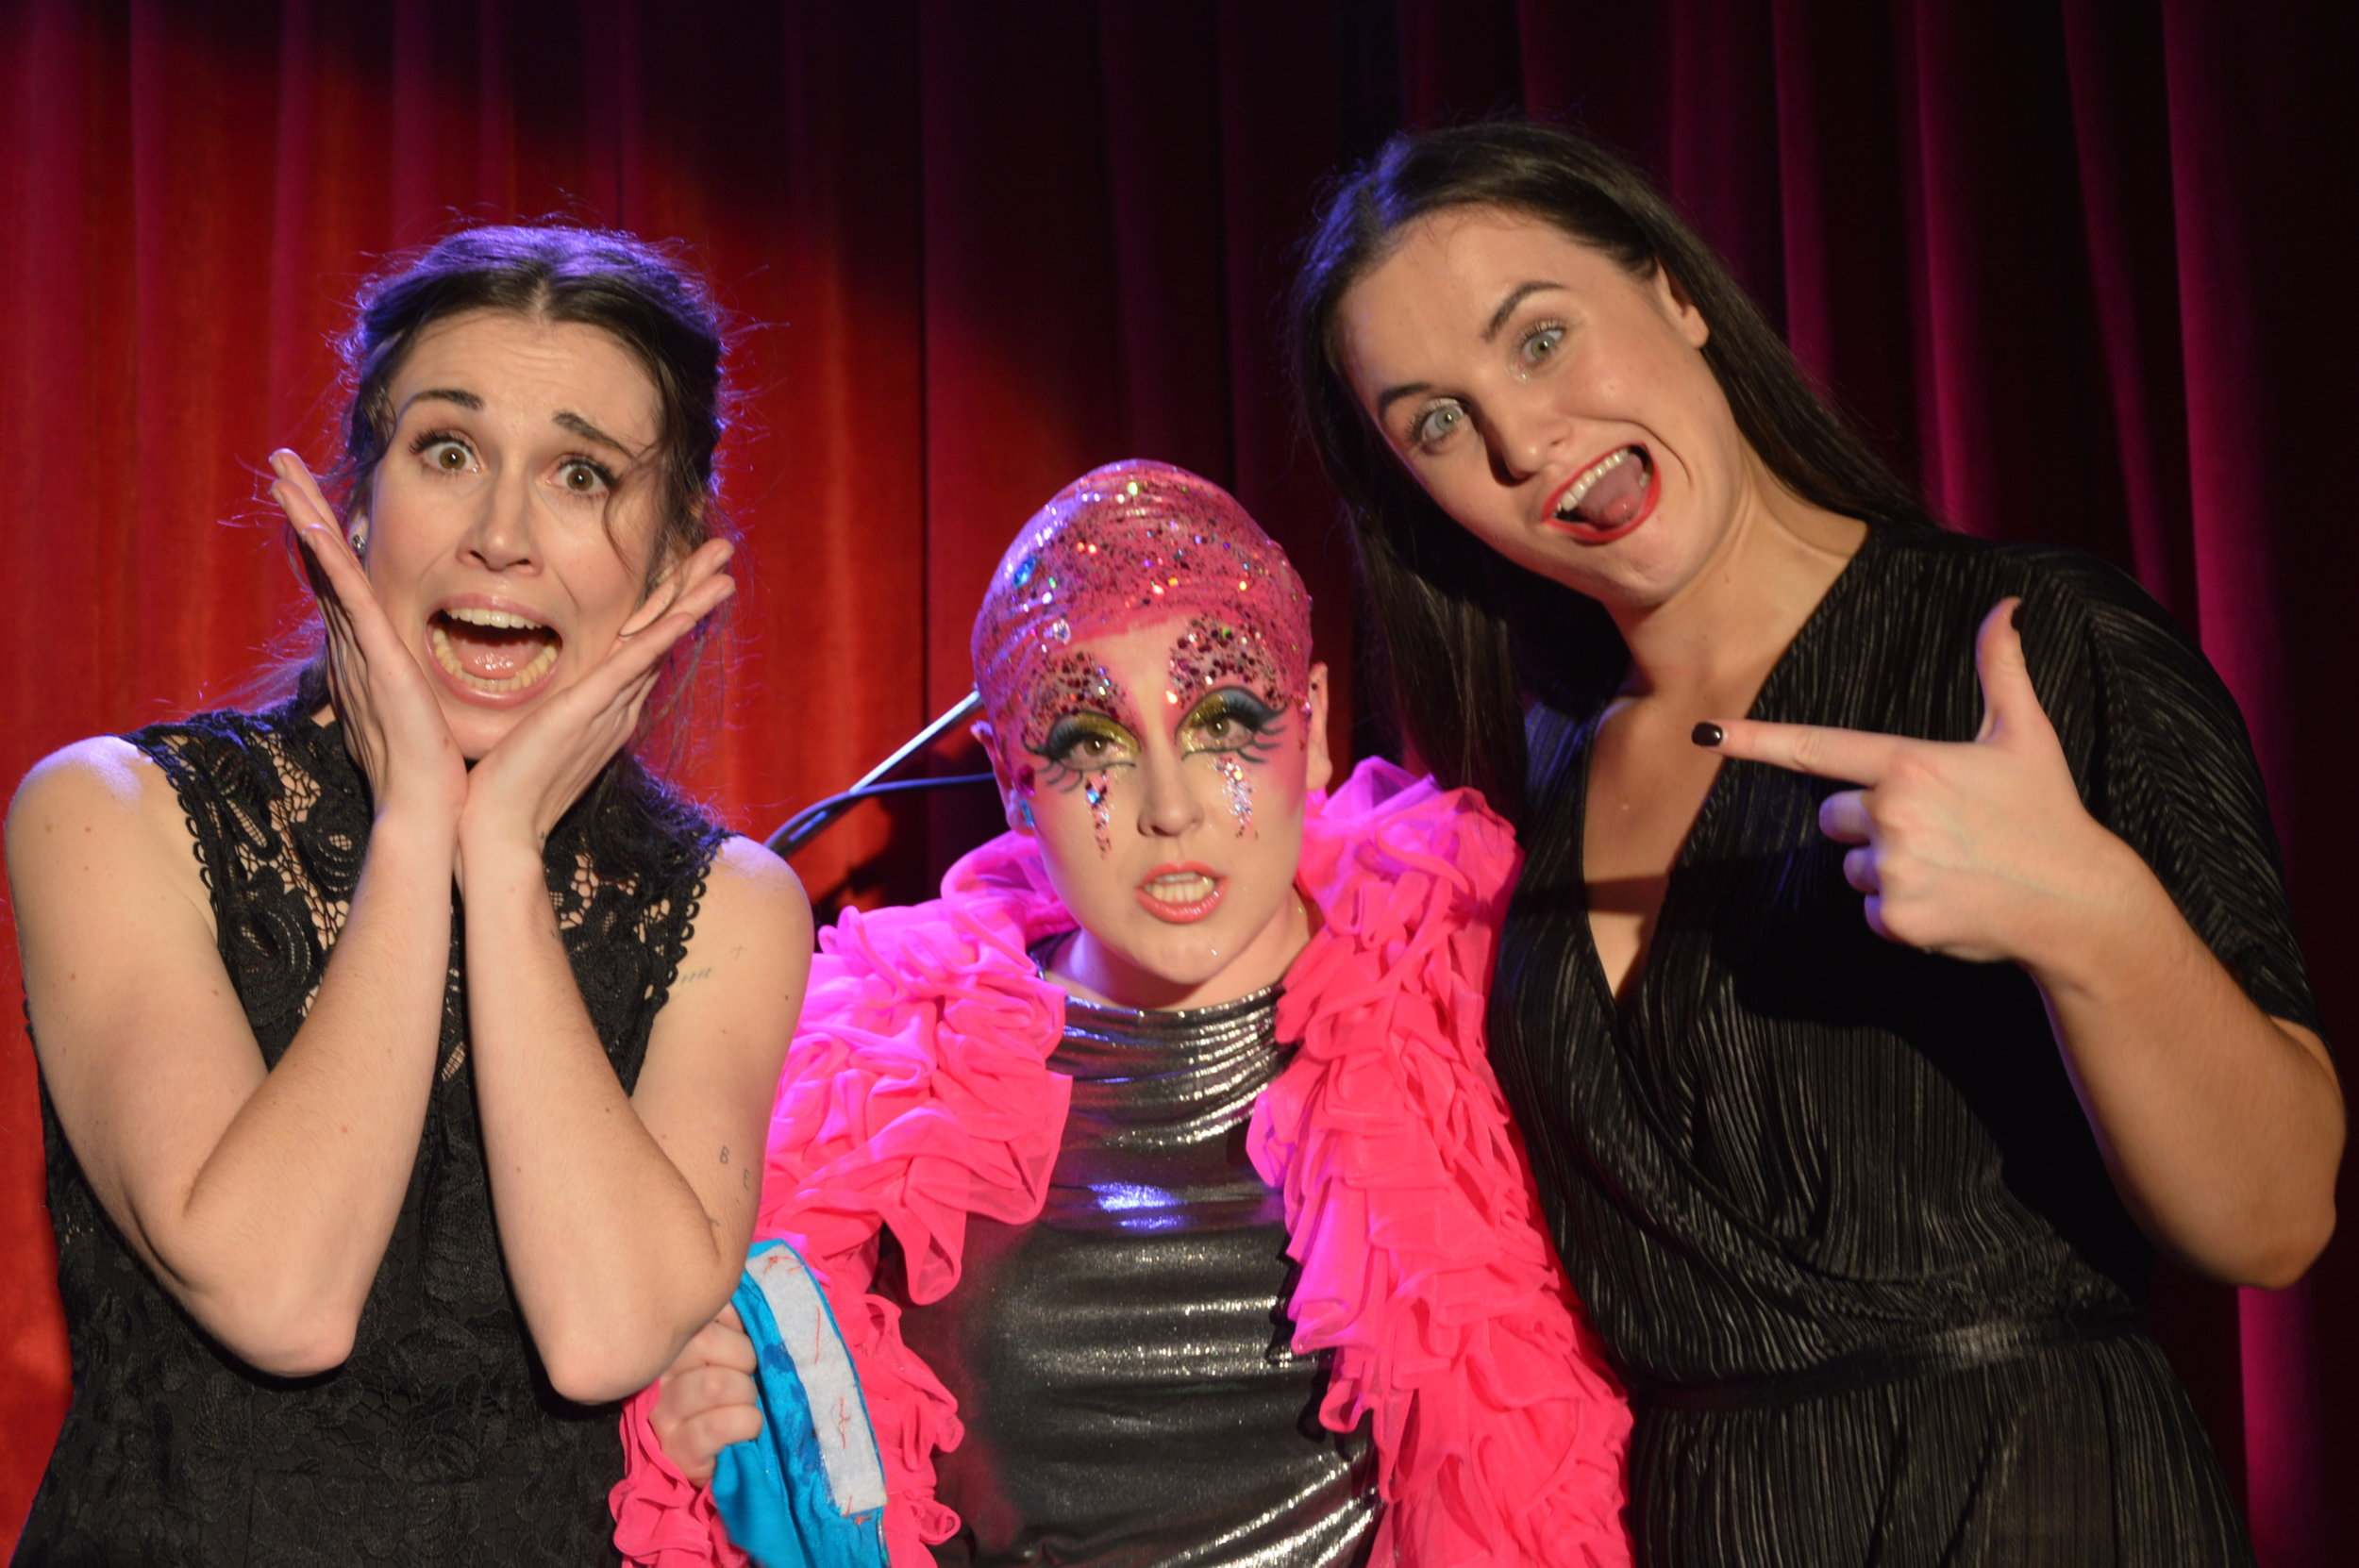 Sydney Cabaret Competition - Heat 3 winners: Ali Calder (L), Clare O'Connor (M), Billie Palin (R)